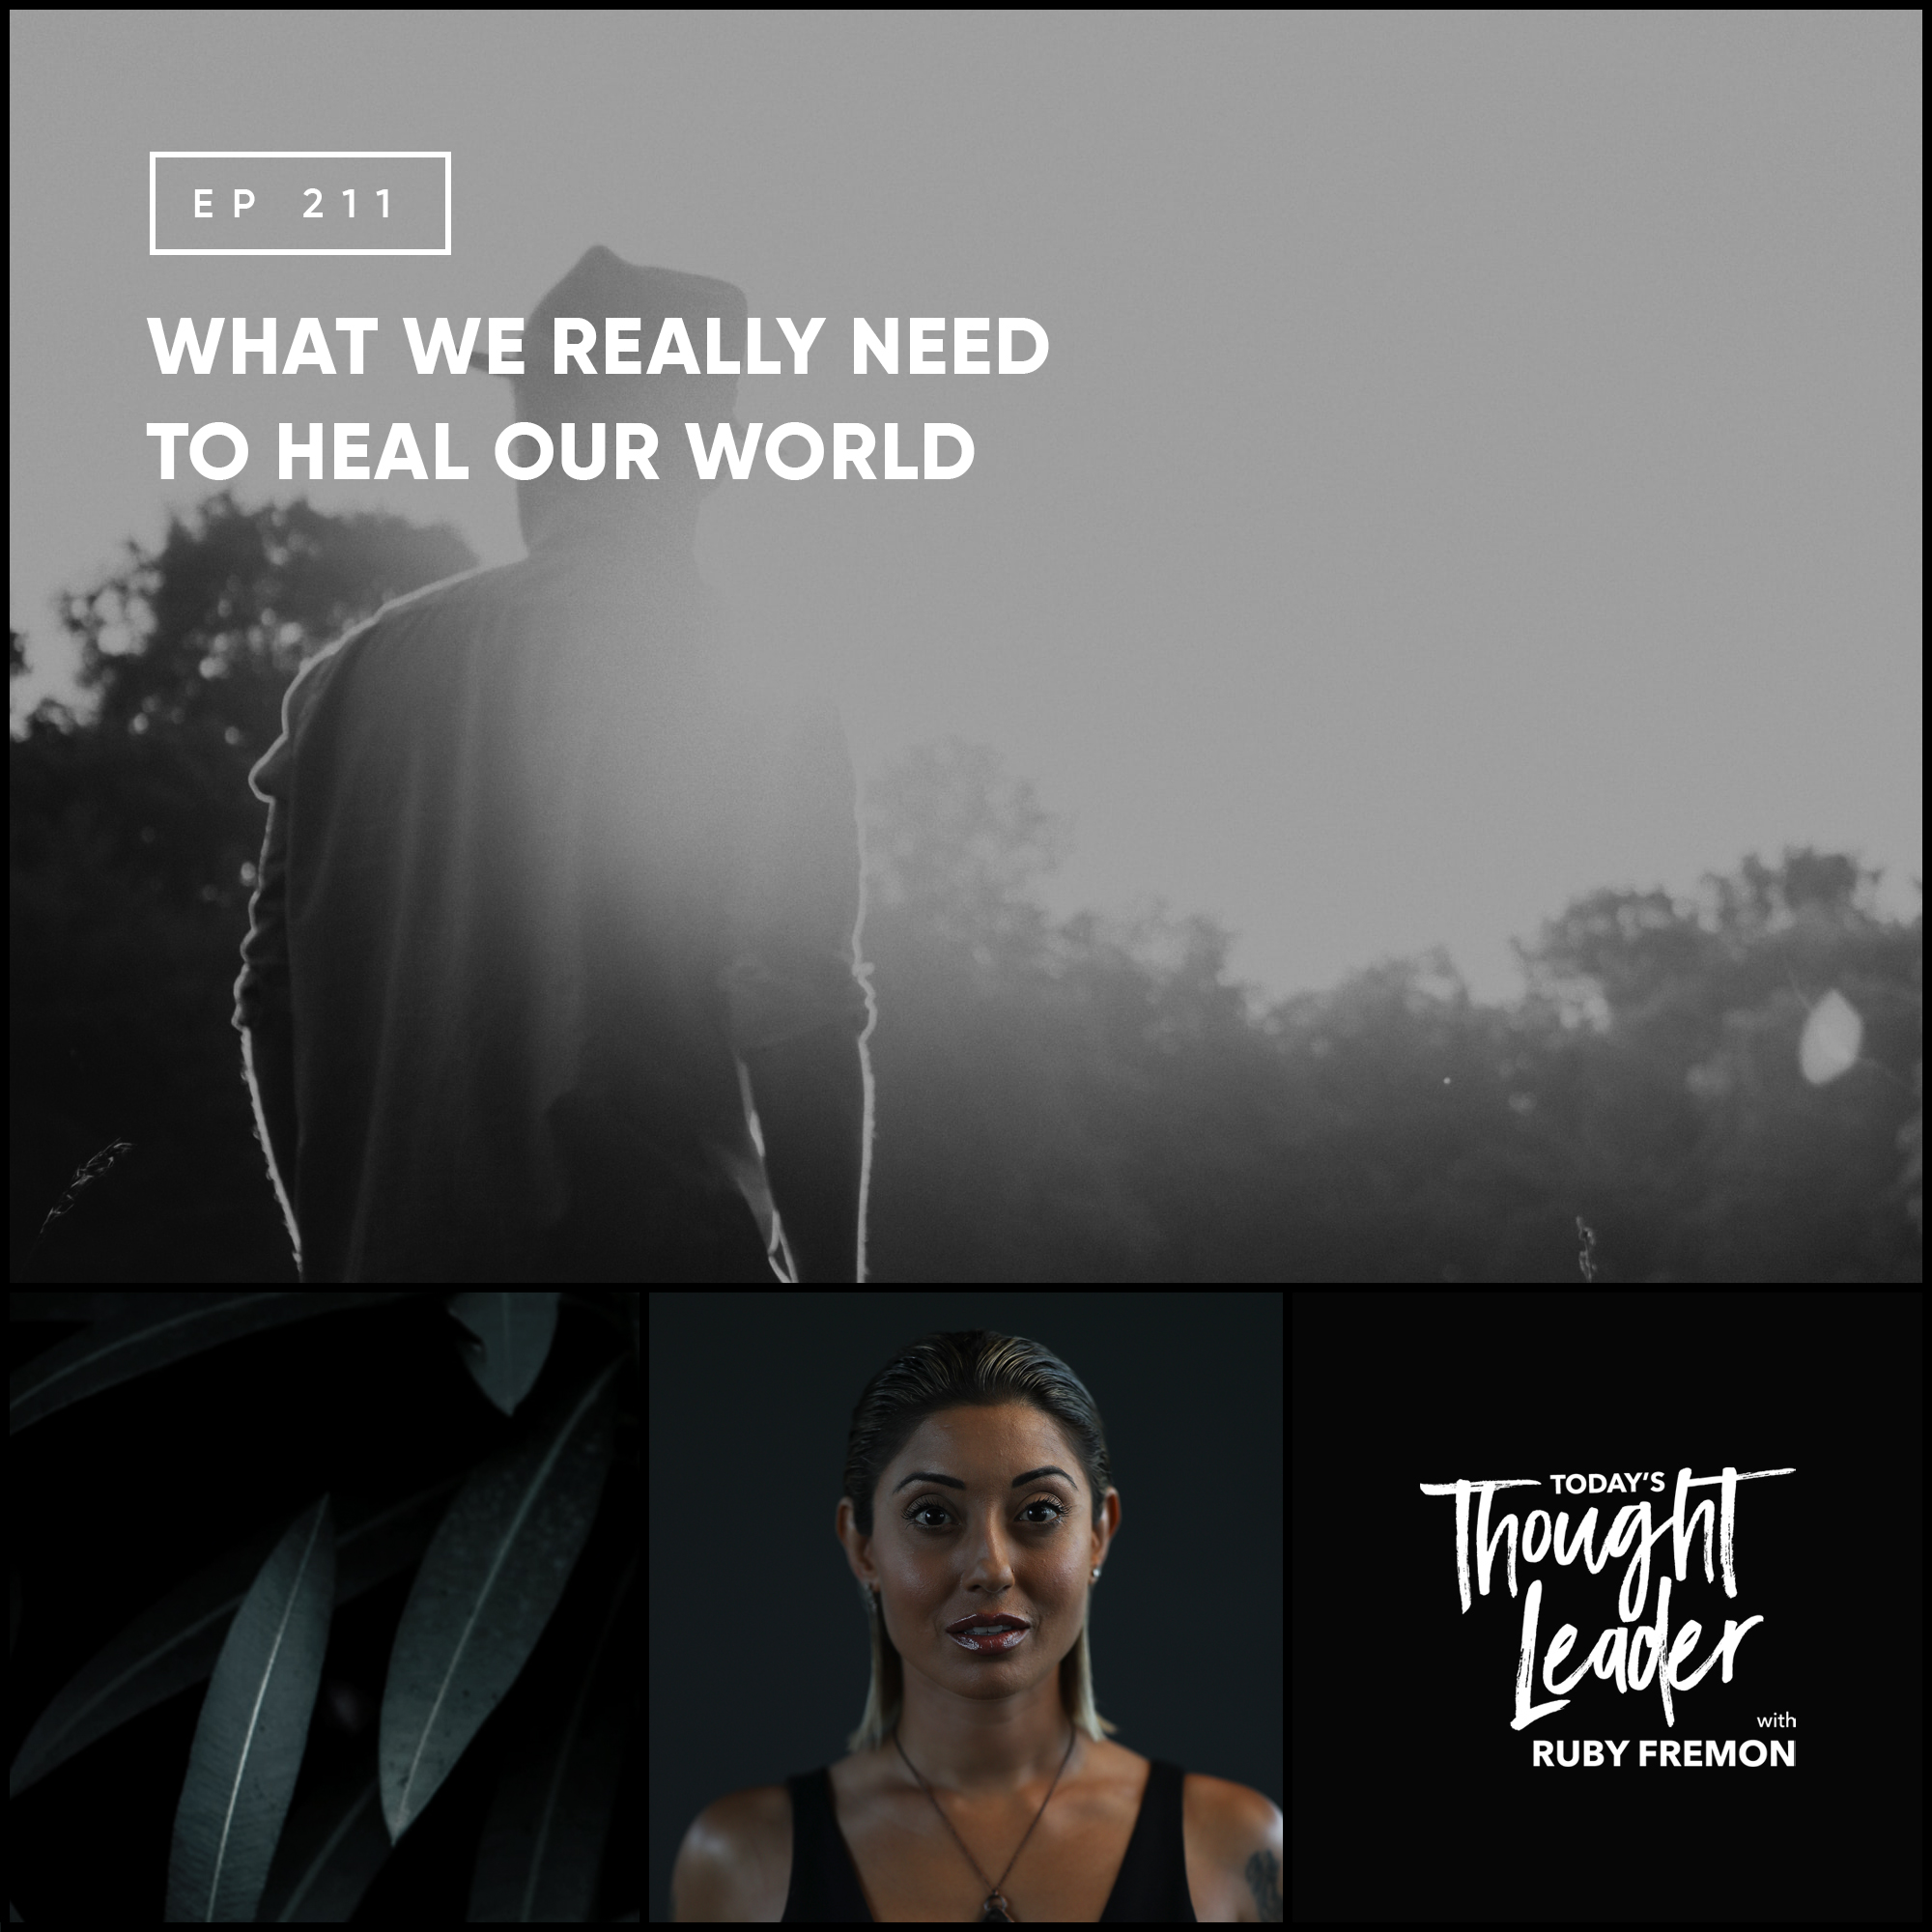 211: What We Really Need to Heal Our World